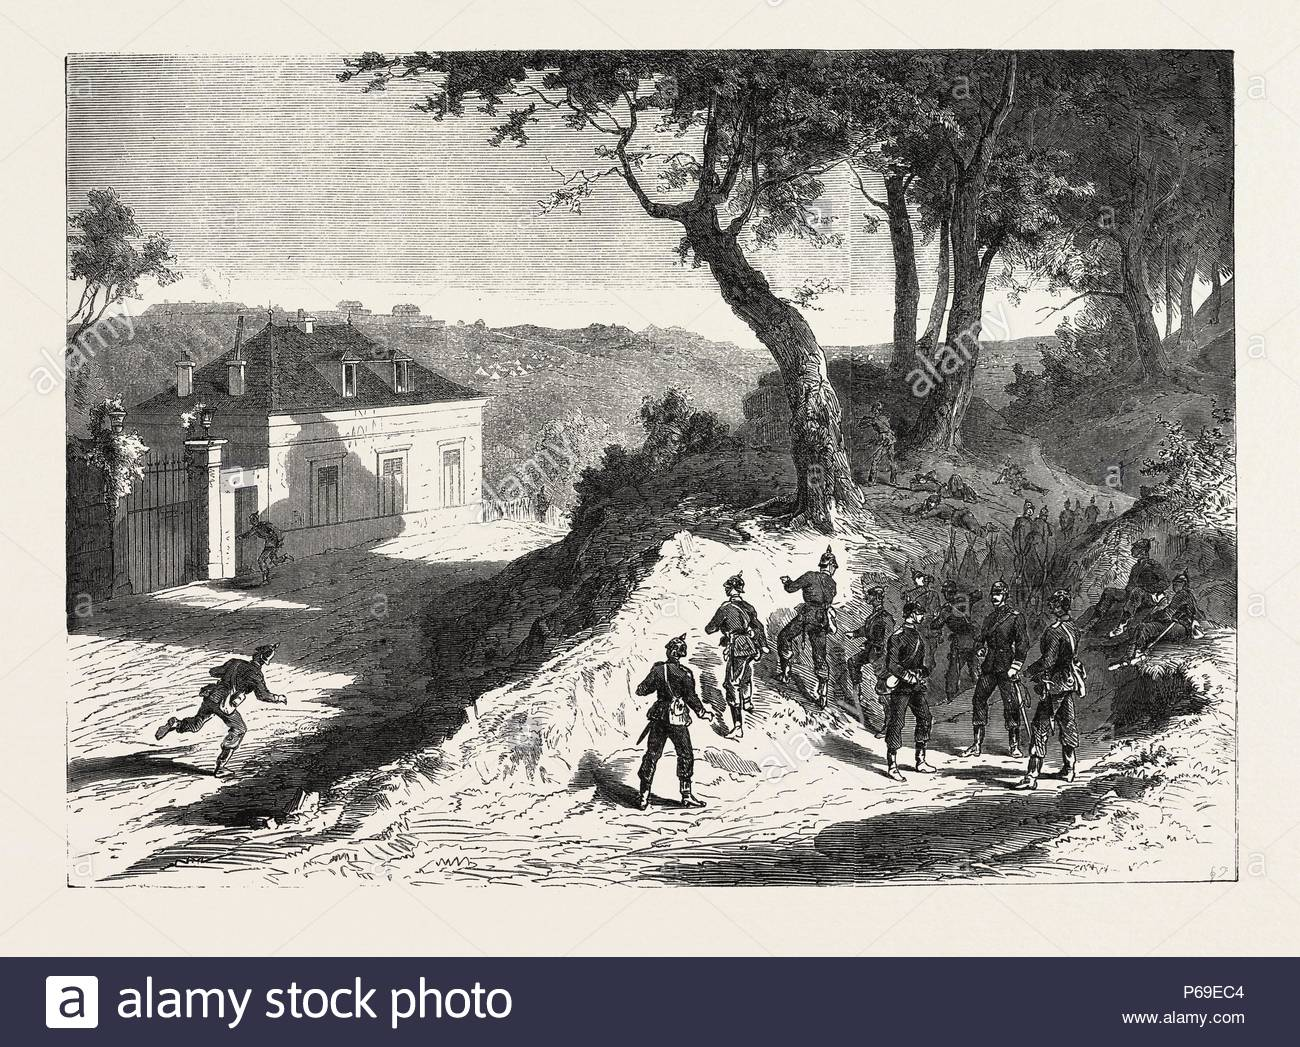 FRANCO-PRUSSIAN WAR: SAXONS FRONTLINES BEFORE THE FORT OF NOISY, FRENCH CAMP, FORT ROMAINVILLE, SUBURBS OF PARIS. - Stock Image